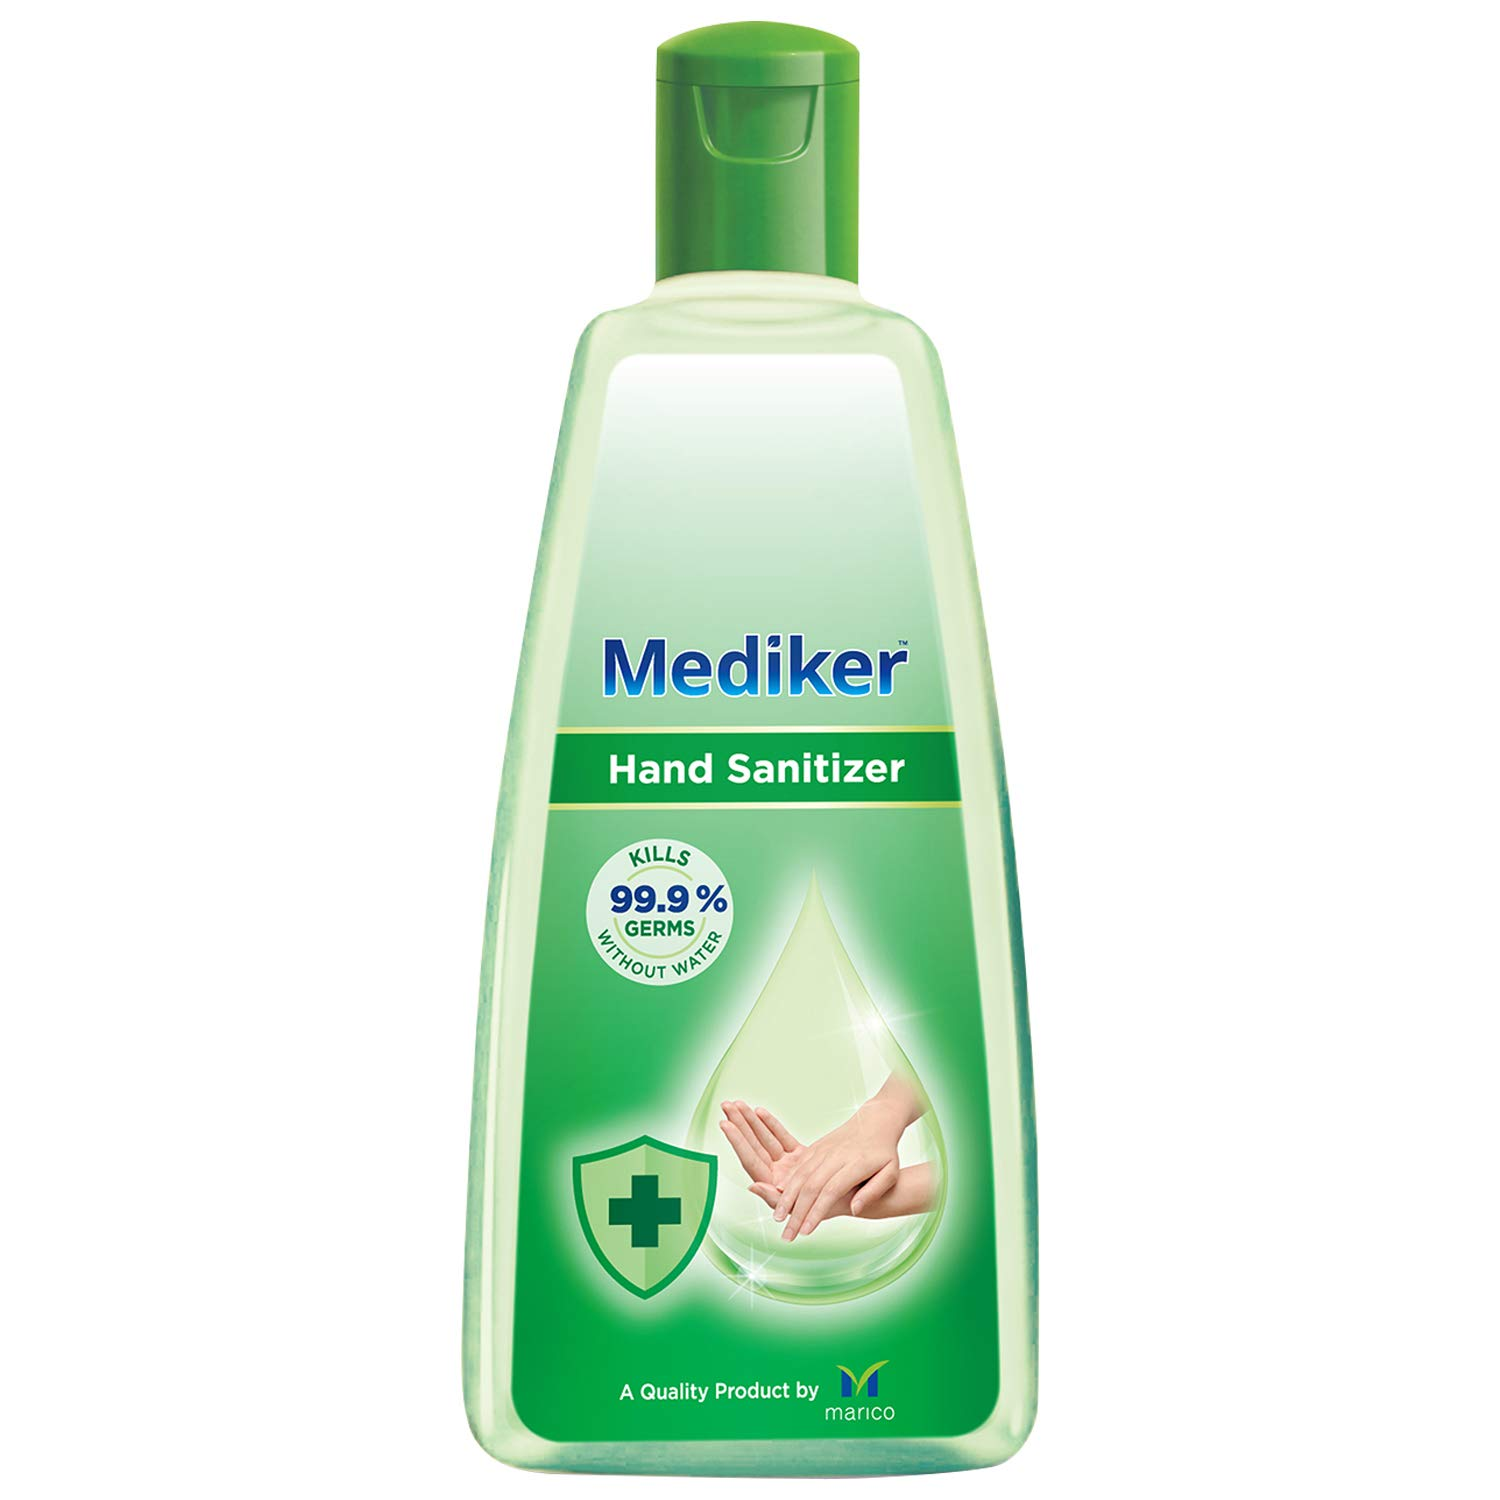 Mediker Hand Sanitizer,70 % Alcohol Based Sanitizer,Instantly Kills 99.9% Germs Without Water,Use Anytime, Anywhere,500 ml